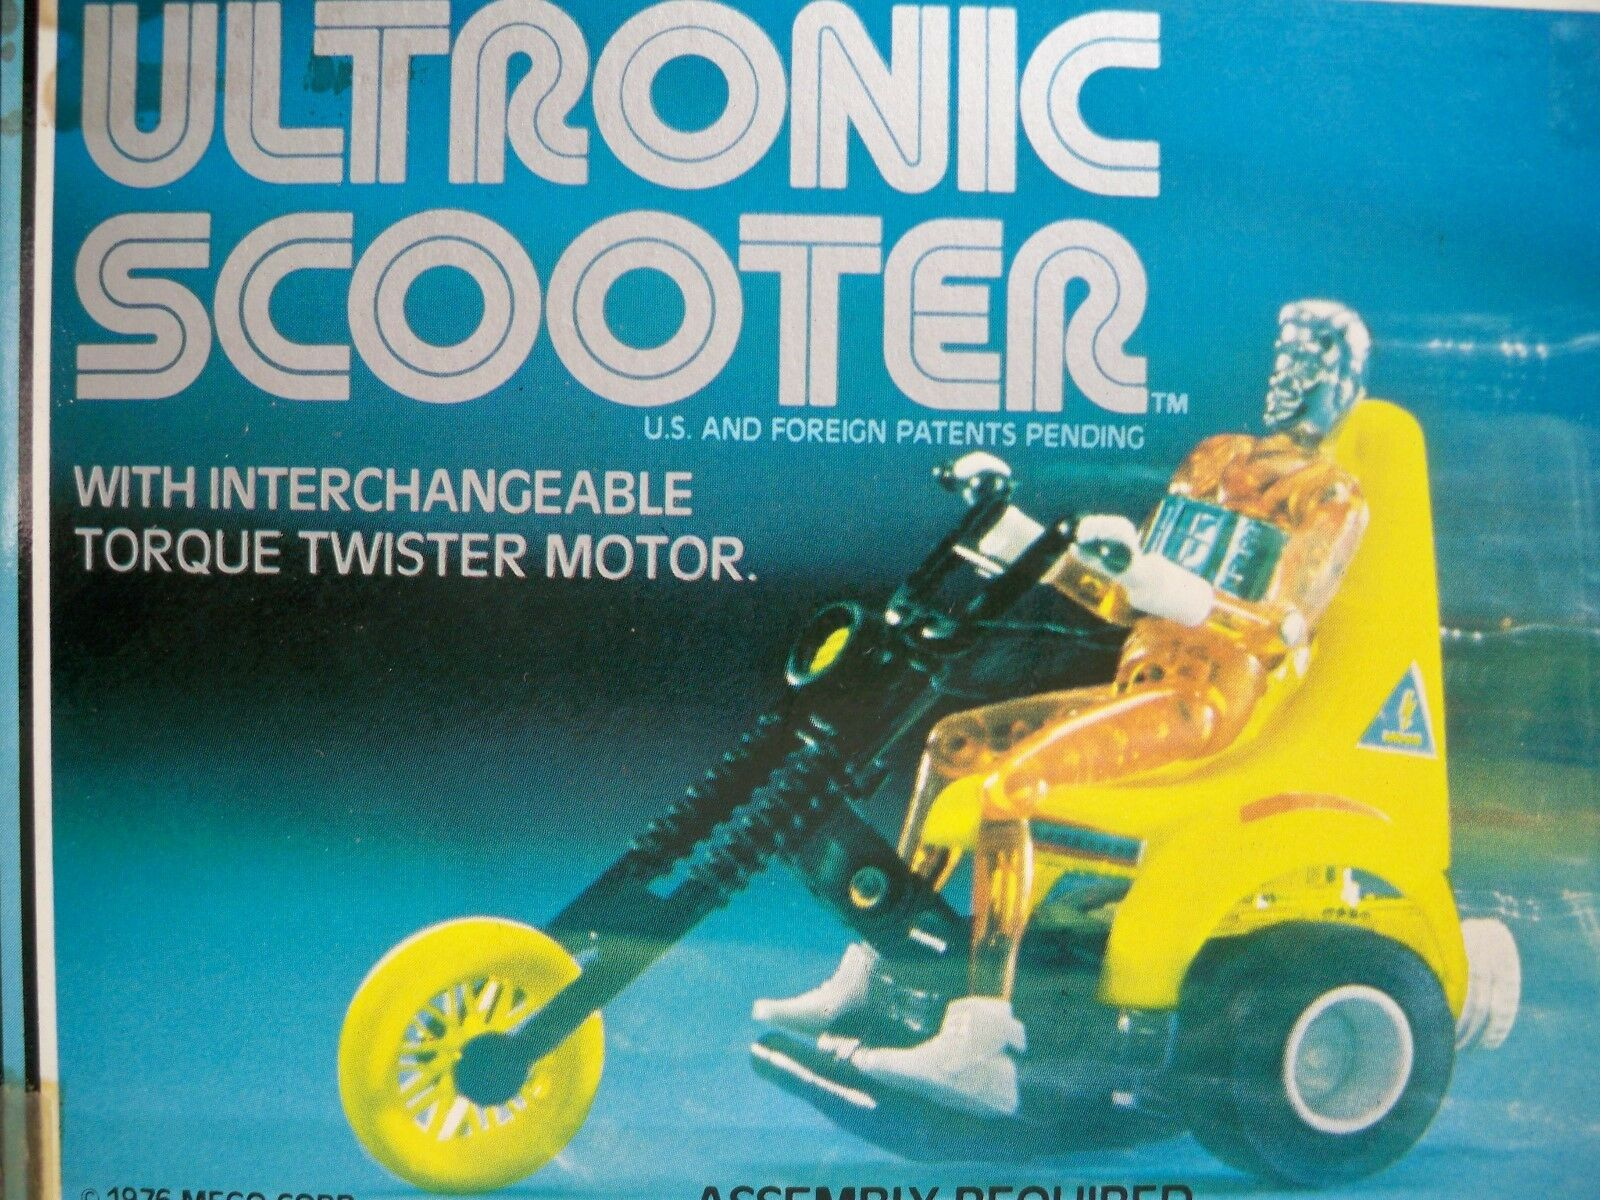 K1800812 ULTRONIC SCOOTER MIB MINT IN BOX SEALED FIGURE MICRONAUTS 1976 MEGO